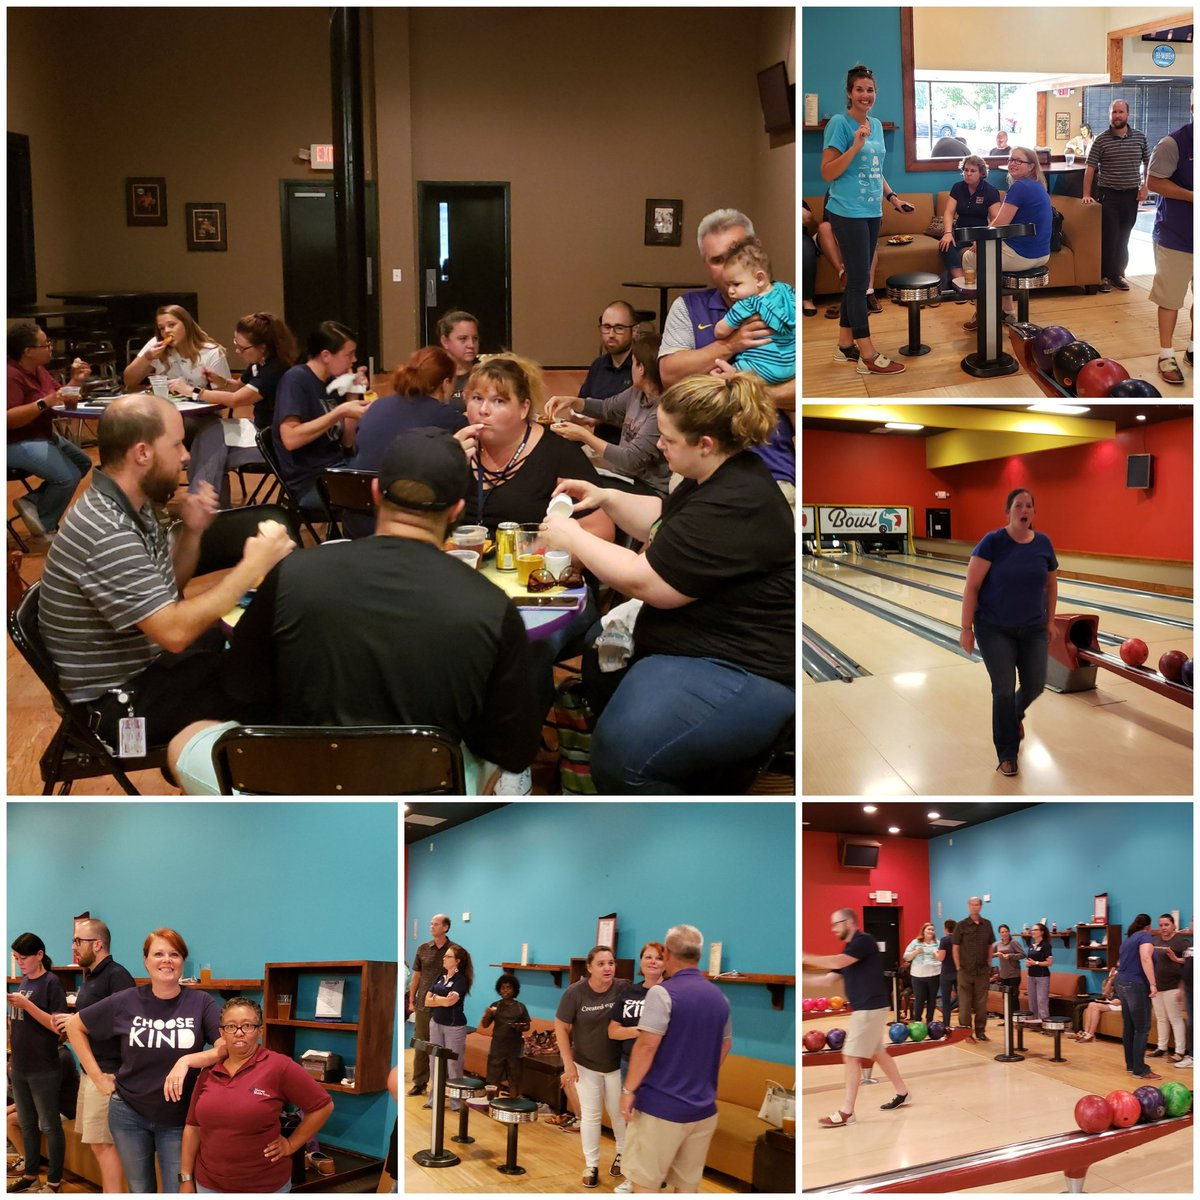 New teacher/ veteran staff orientation at the bowling alley. Building relationships and #deepeningcommunity!!! #theheritageway #lovewhereyouwork  @HeritageMiddle1<br>http://pic.twitter.com/SD2Bu3cfcj